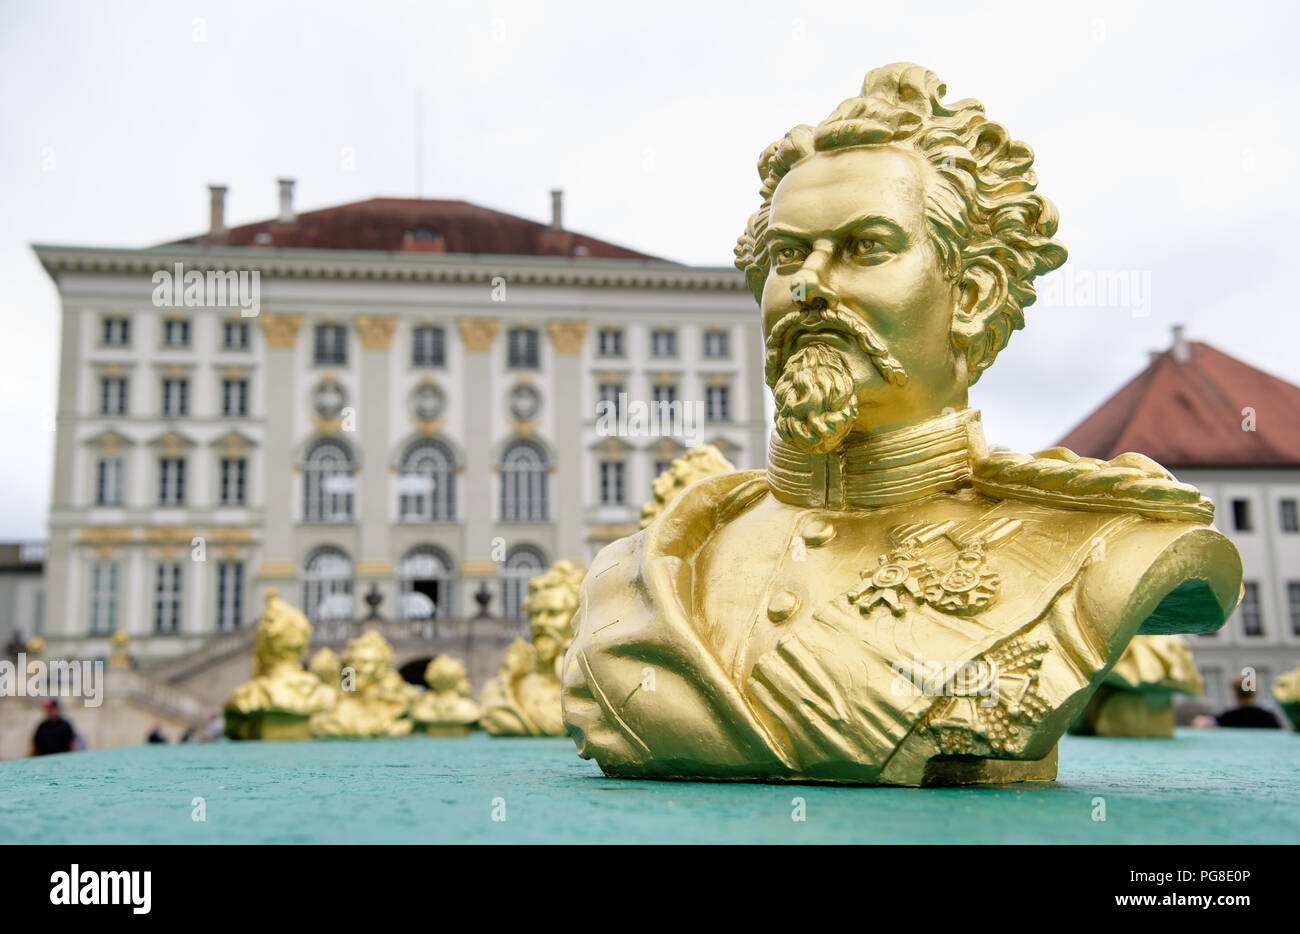 Munich, Germany. 24th Aug, 2018. An art installation in honour of the fairy-tale king Ludwig II. by Nuremberg concept artist Hörlist can be seen in Nymphenburg Palace Park. 100 images of Ludwig II were set up in the context of the art installation one day before Ludwig's 173rd birthday. Credit: Matthias Balk/dpa/Alamy Live News - Stock Image